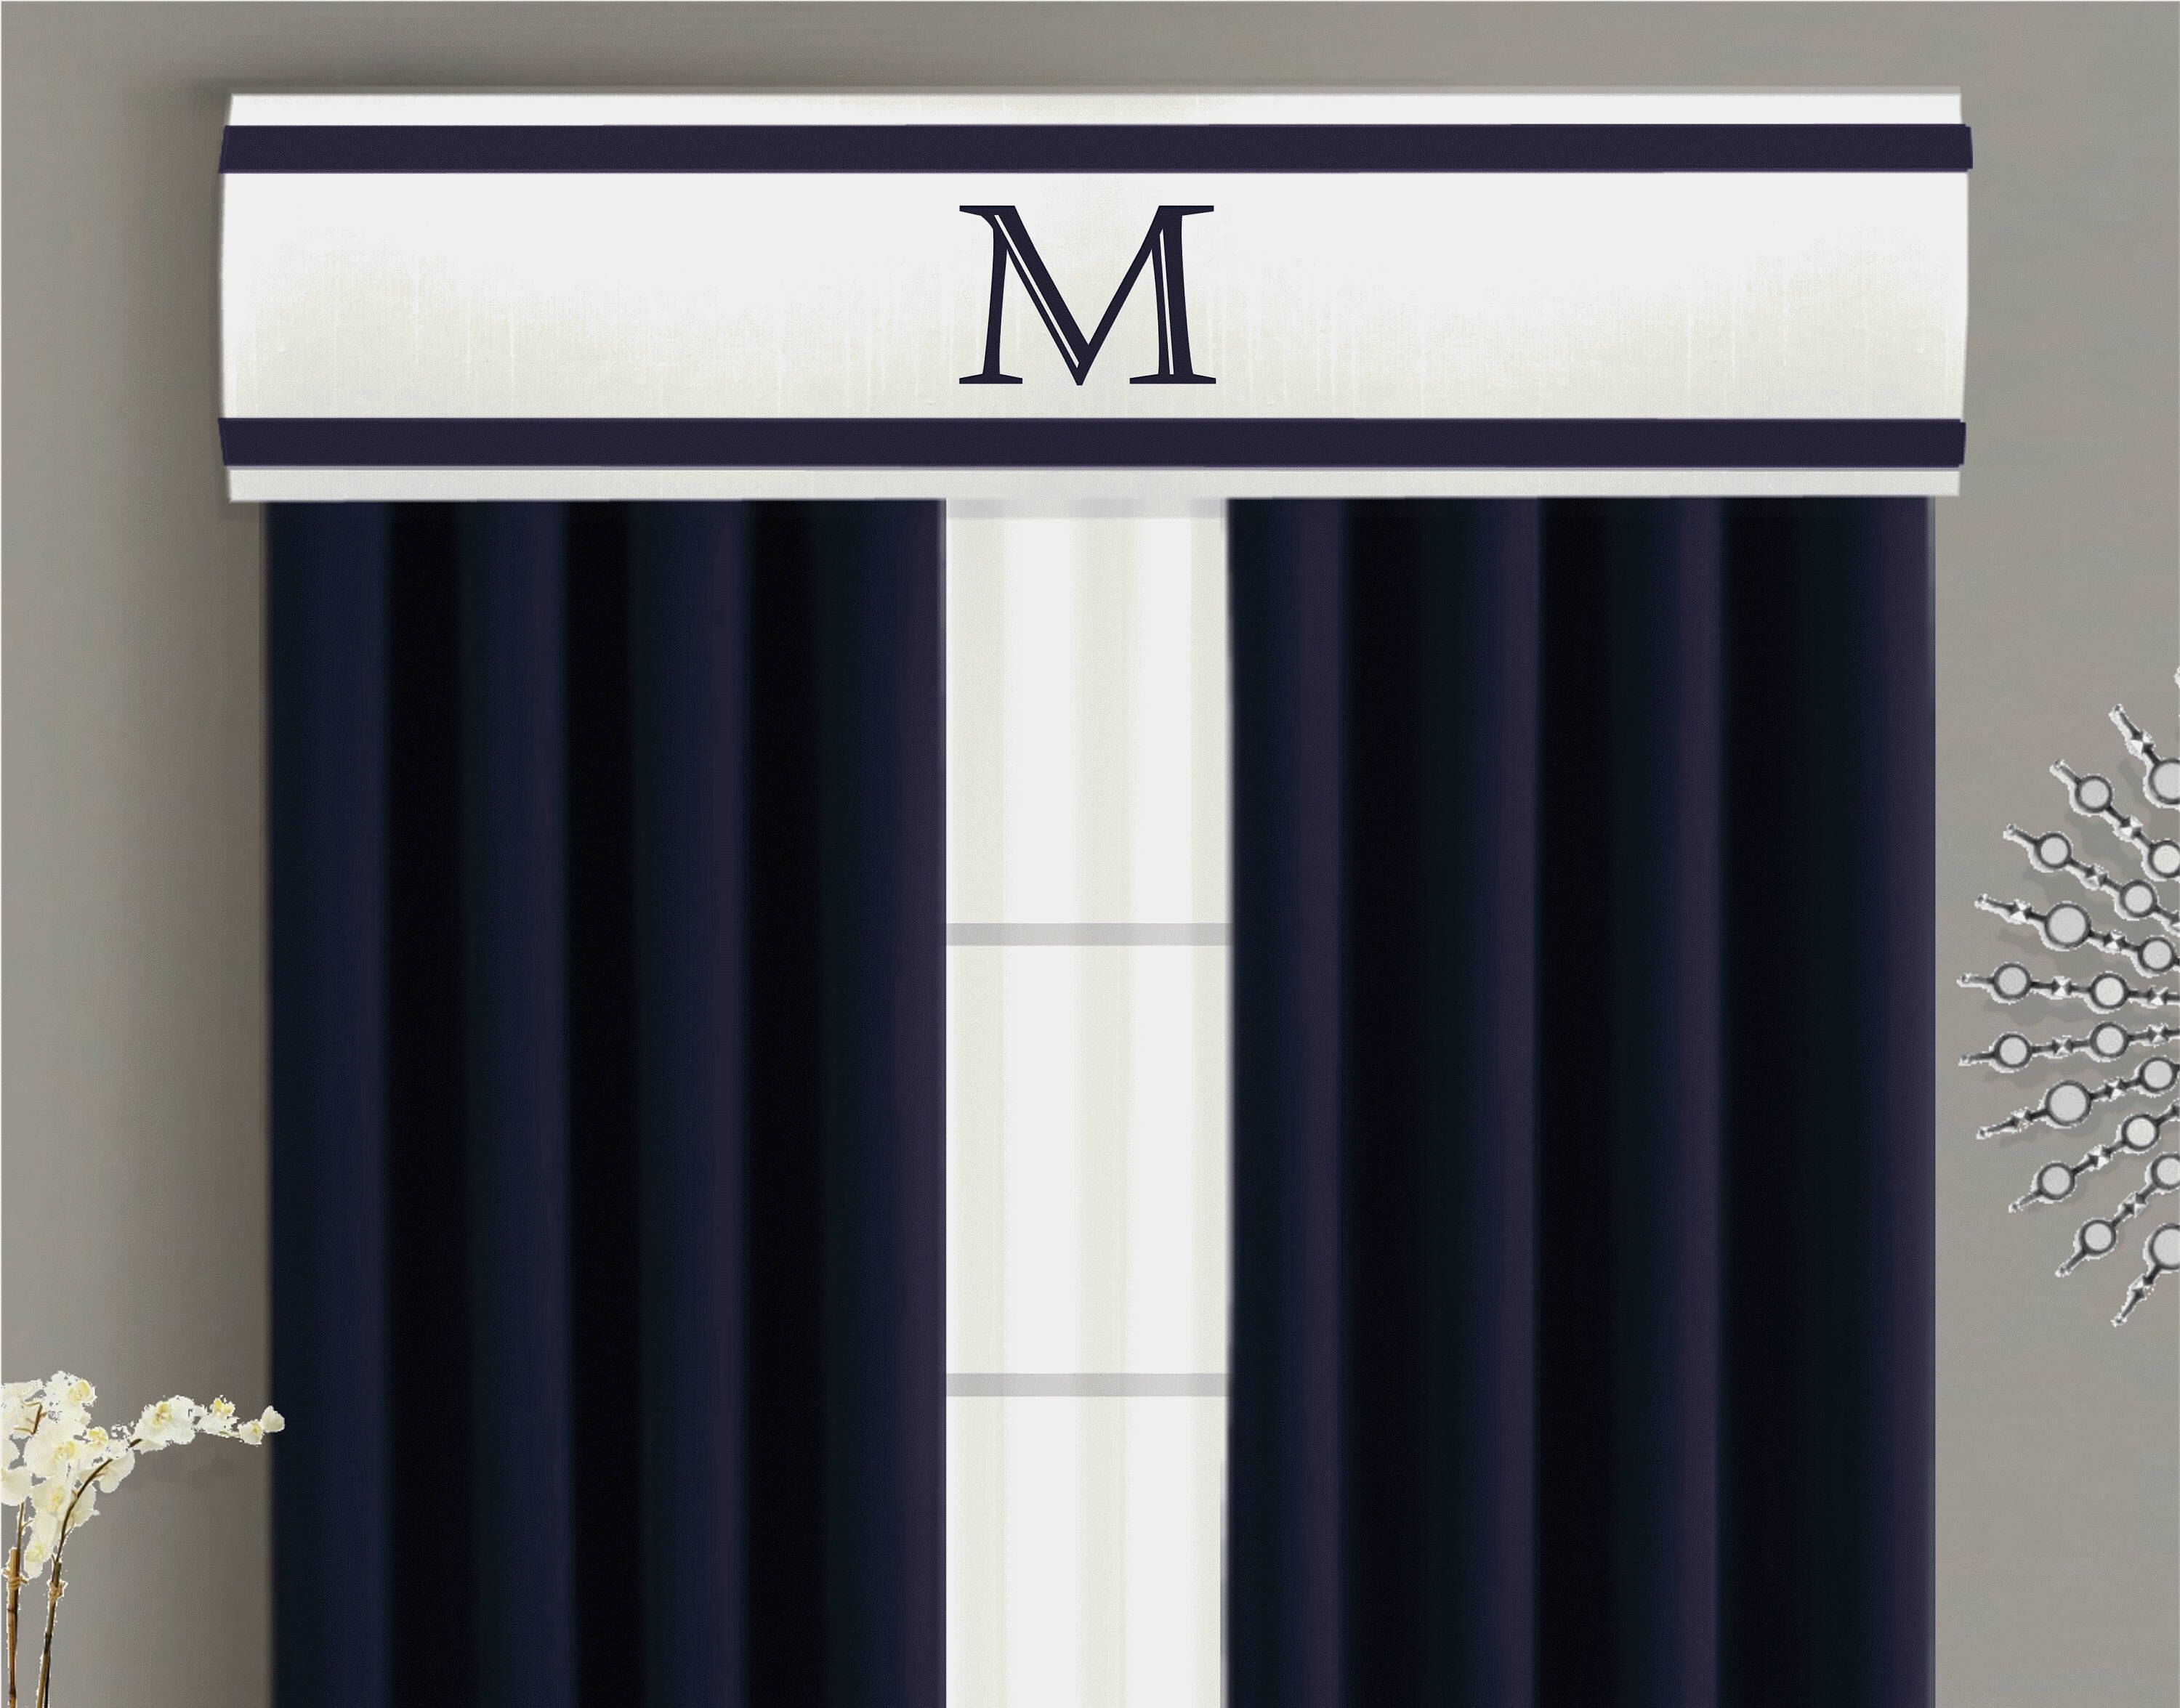 Valance Cornice Board Pelmet Box Window Treatment in White with Navy Blue  Ribbon Trim and Monogram